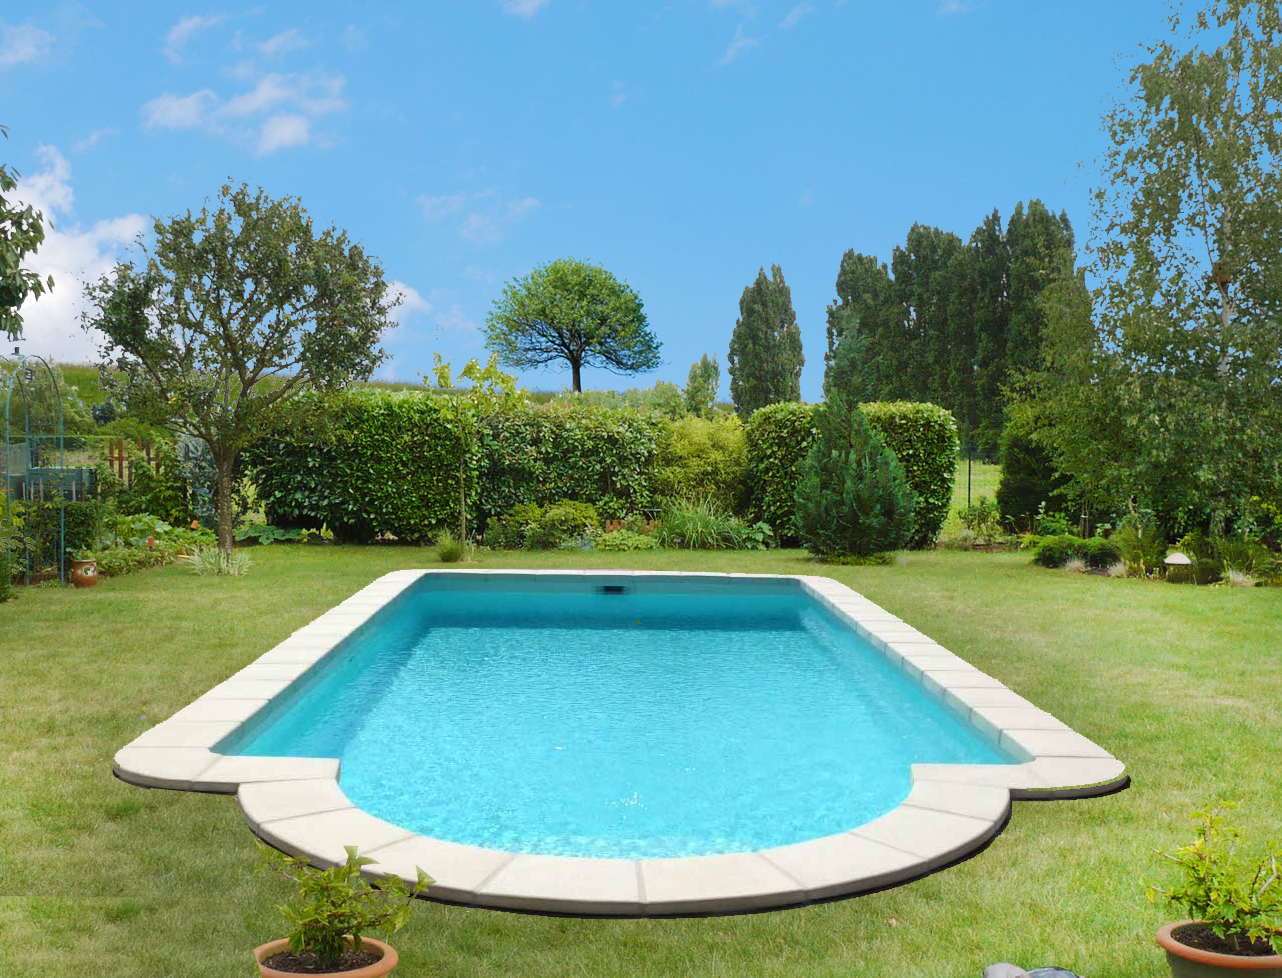 Piscine coque polyester rectangulaire mod le bayonne for Dimension piscine coque